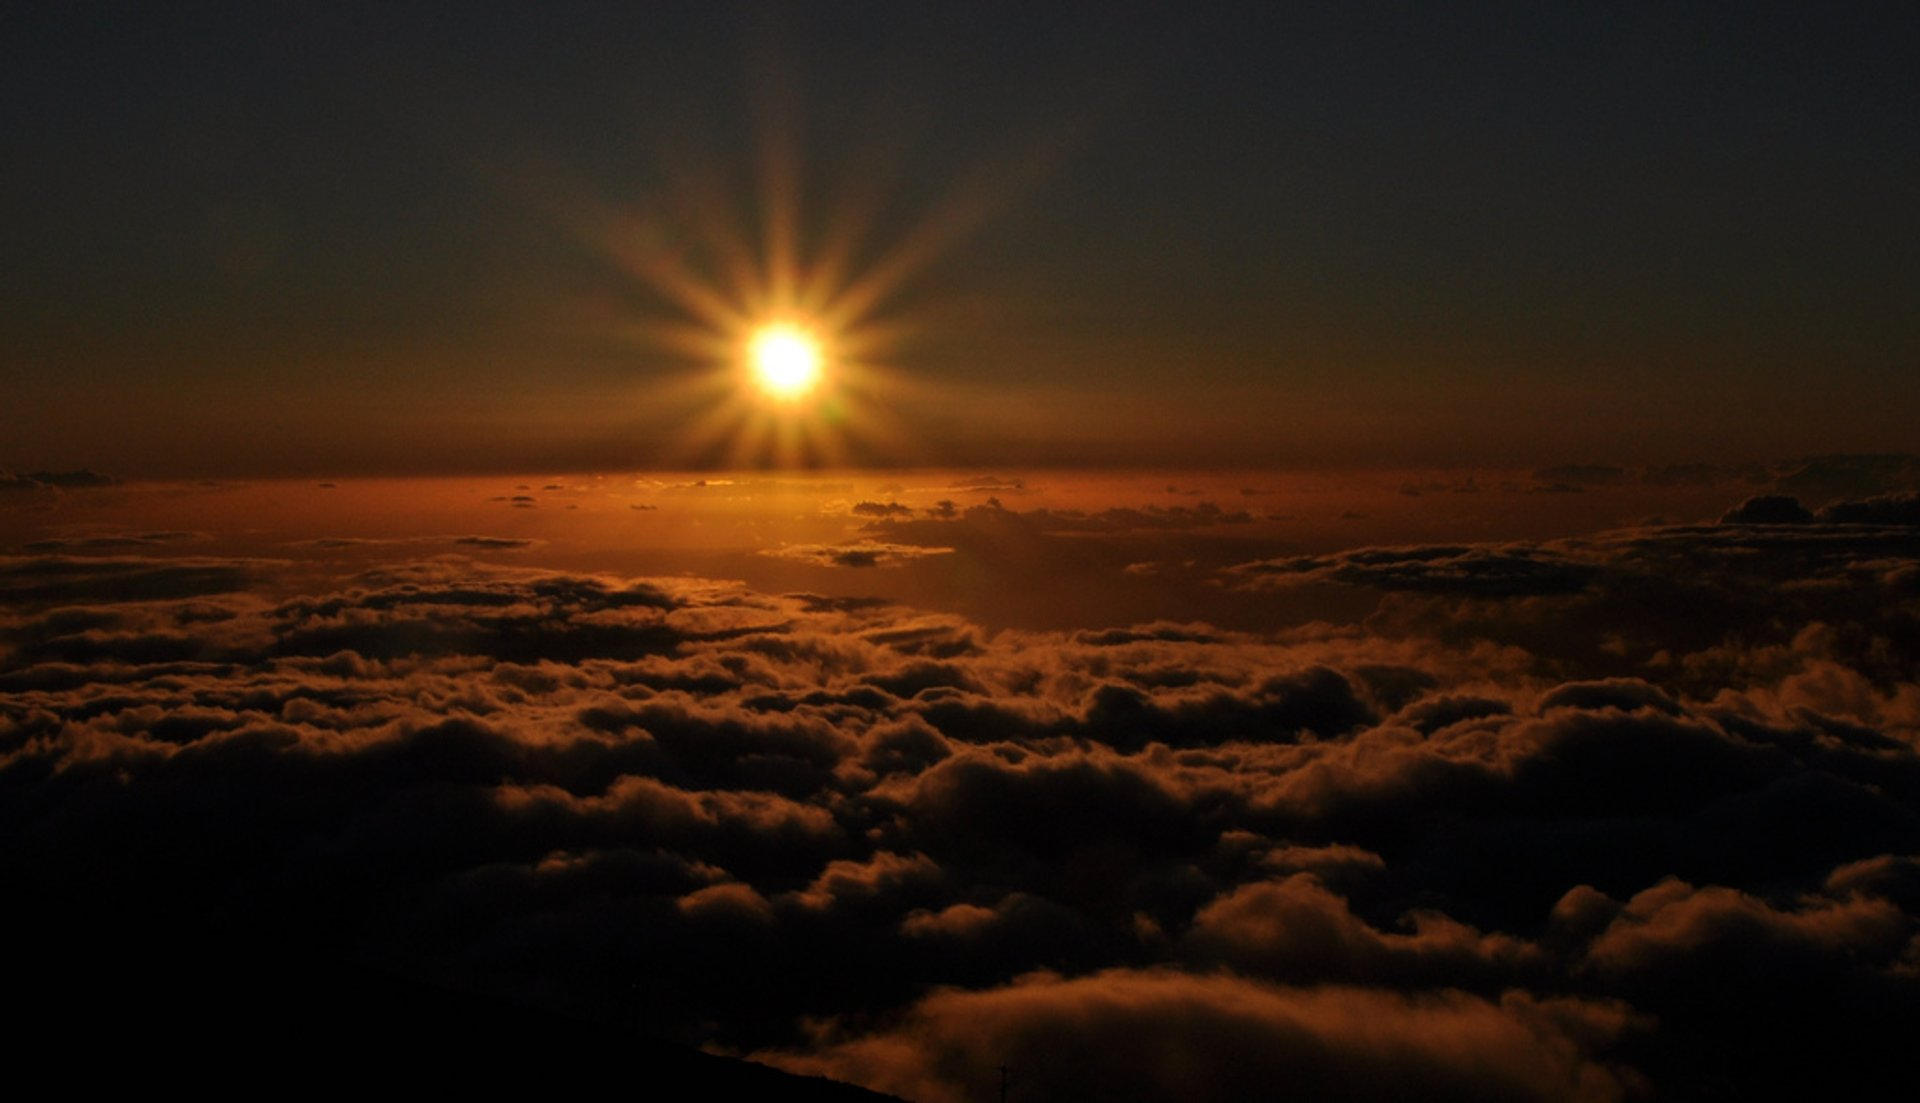 Haleakala Sunrise and Sunset in Hawaii - Best Time